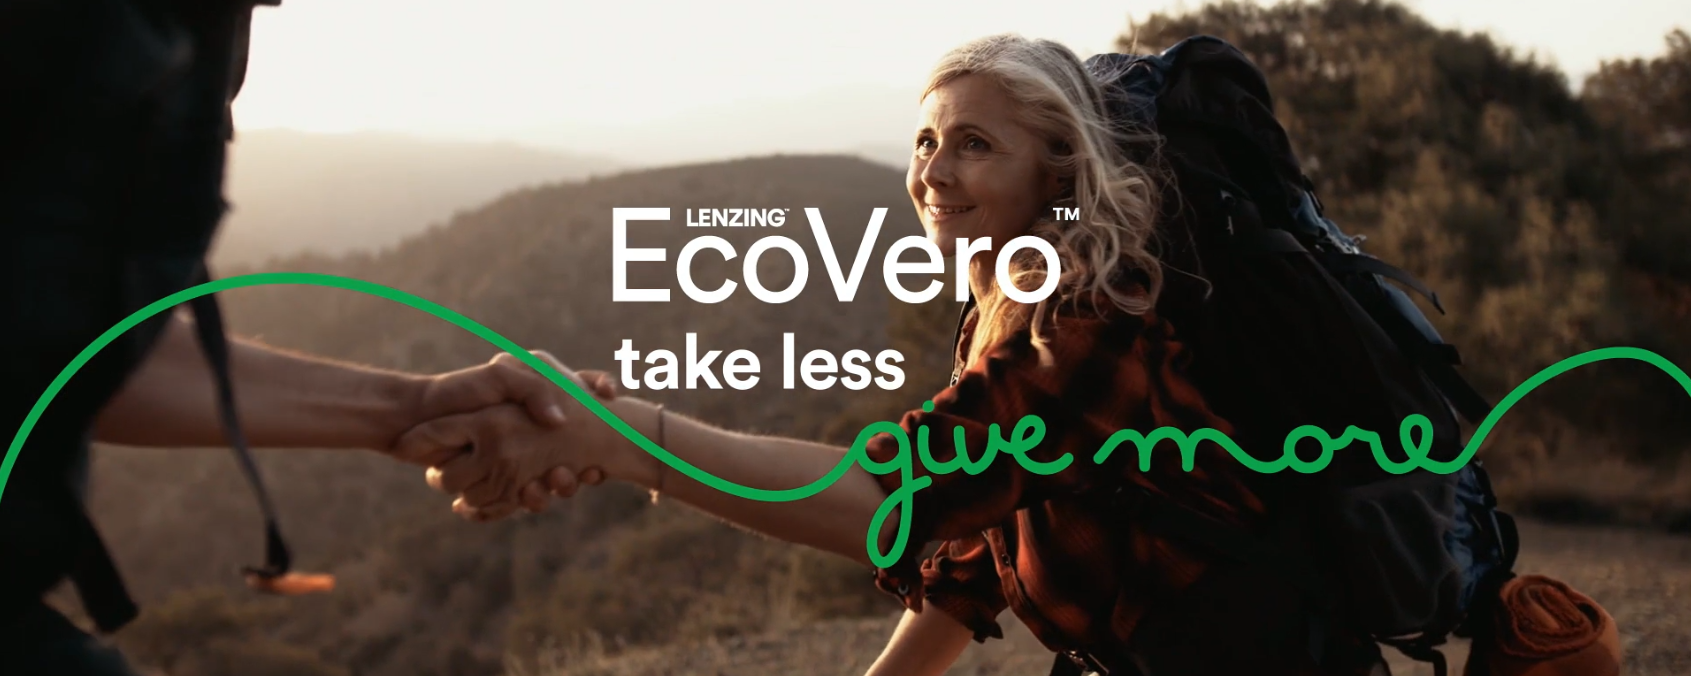 couture-et-paillettes-ecovero-take-less-give-more